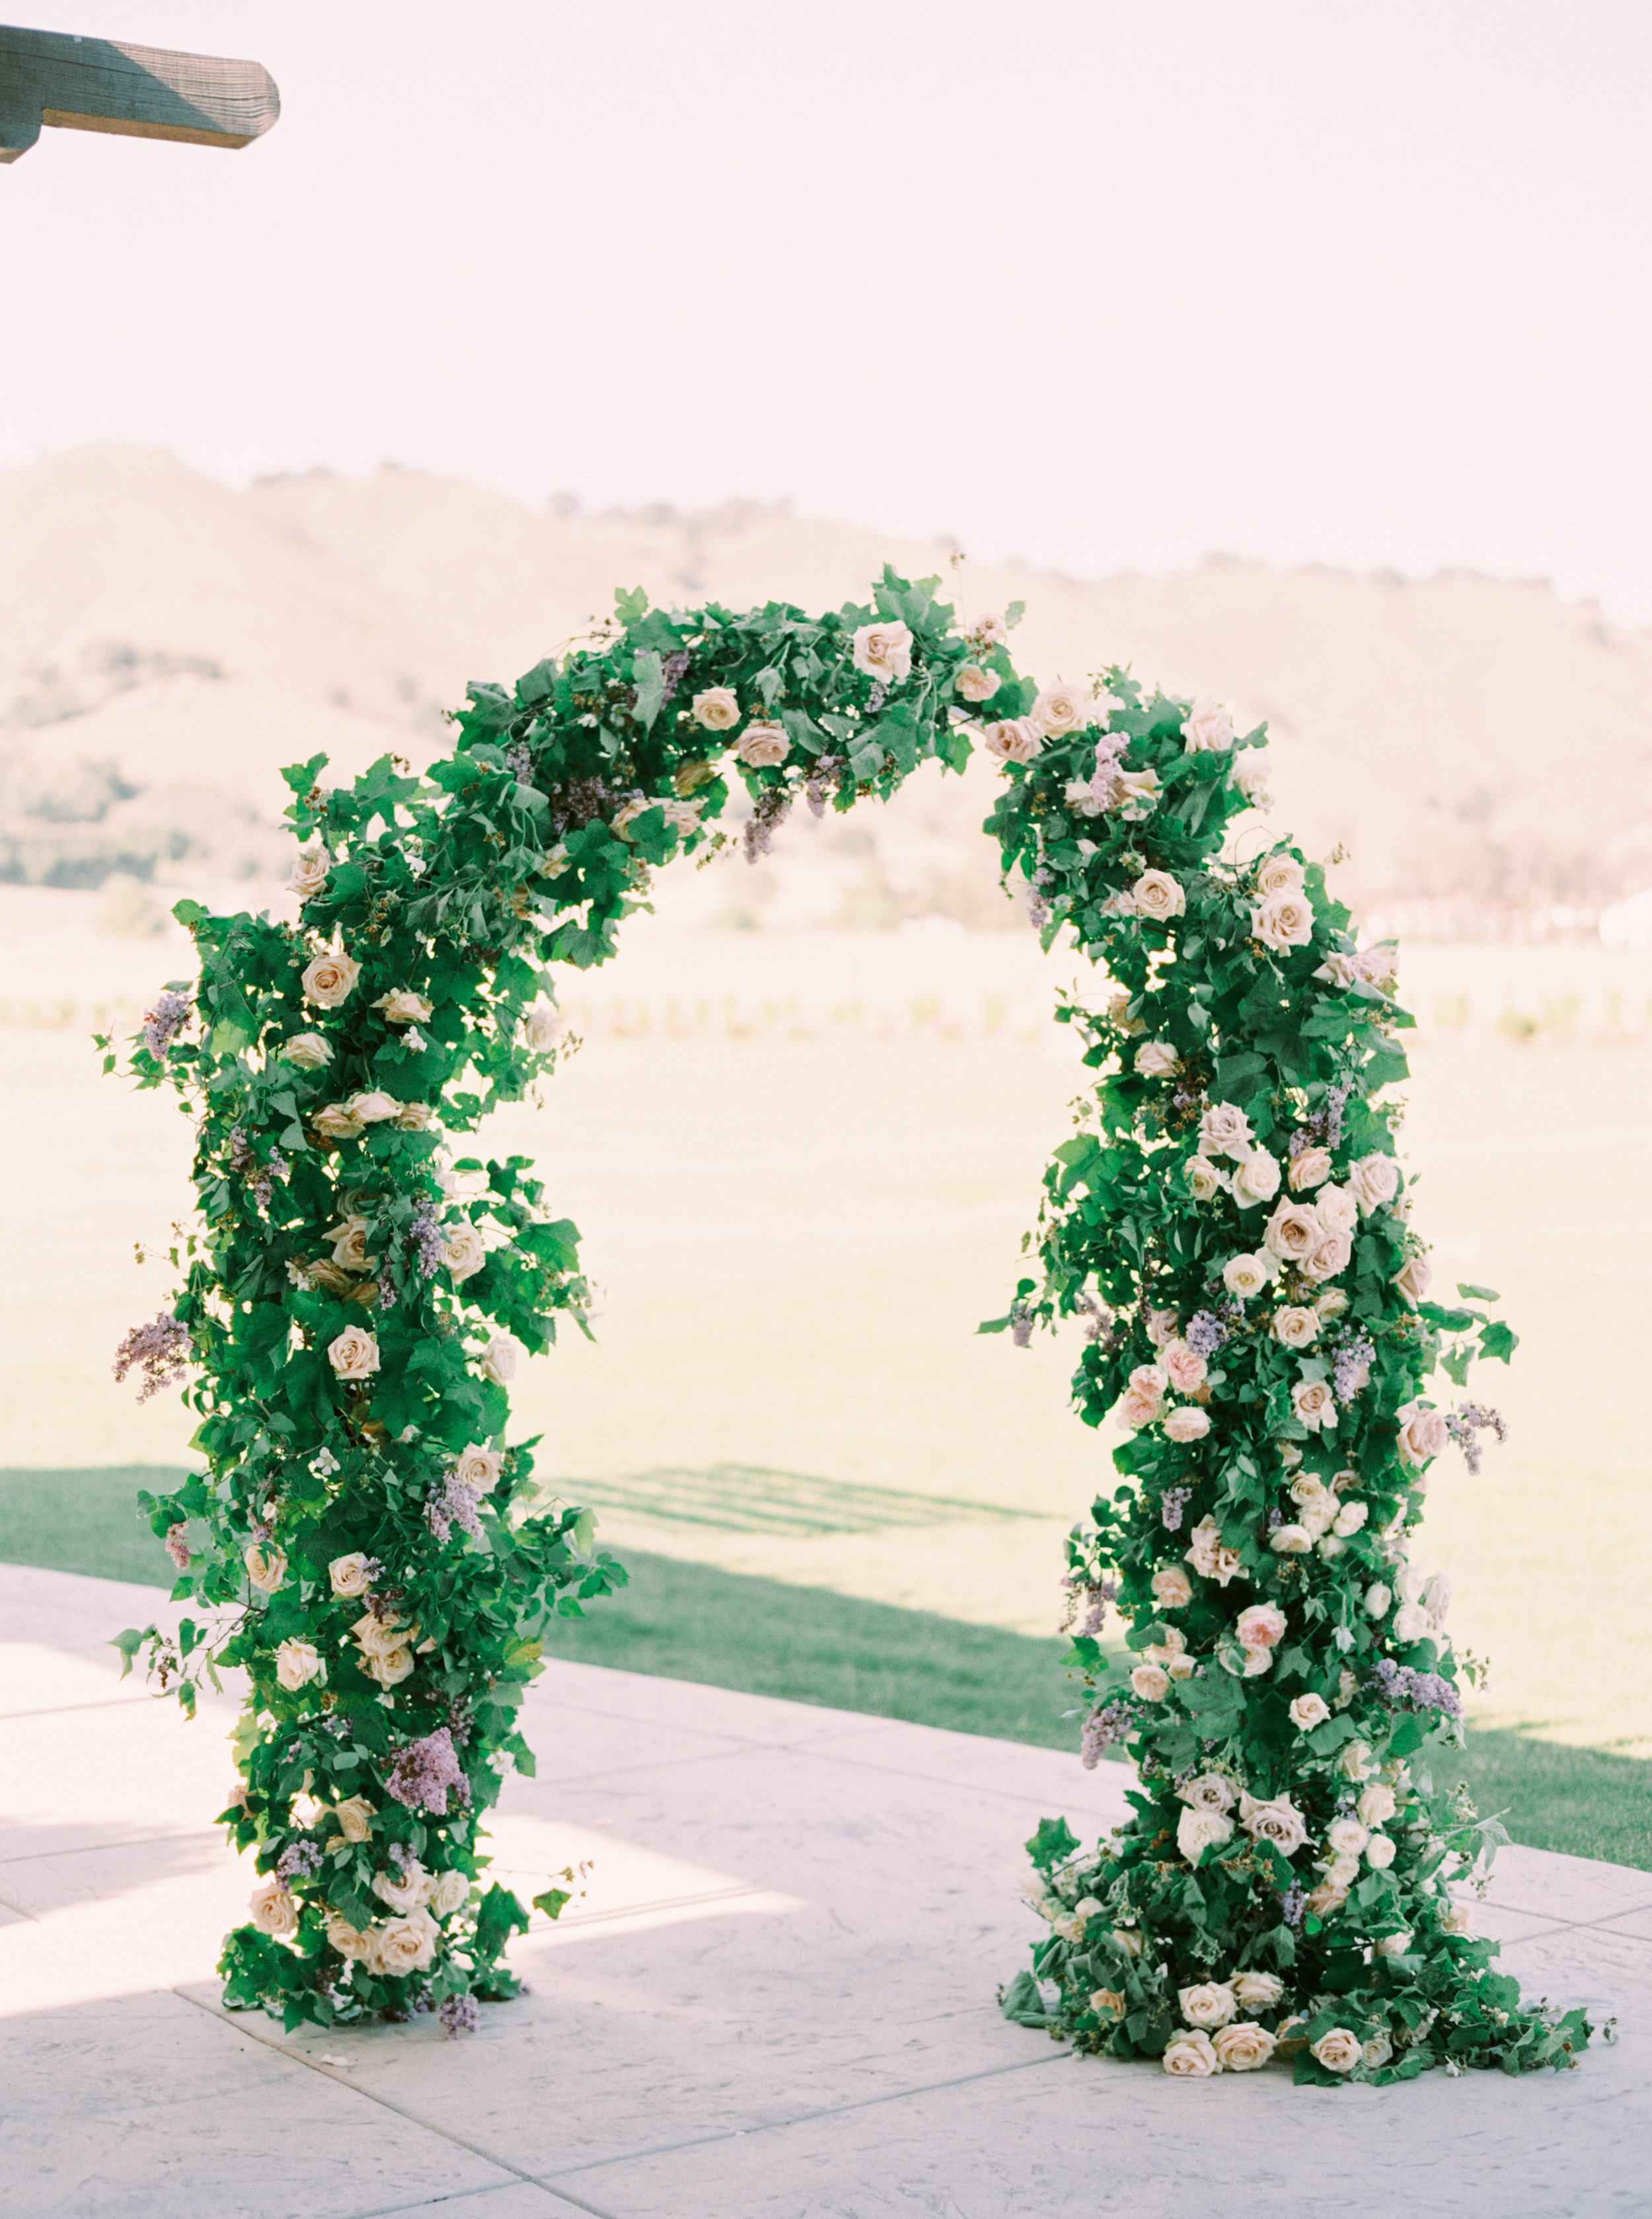 This-Love-of-Yours-Kirigin-Cellars-Flower-Arch-Styled-Shoot-101.jpg